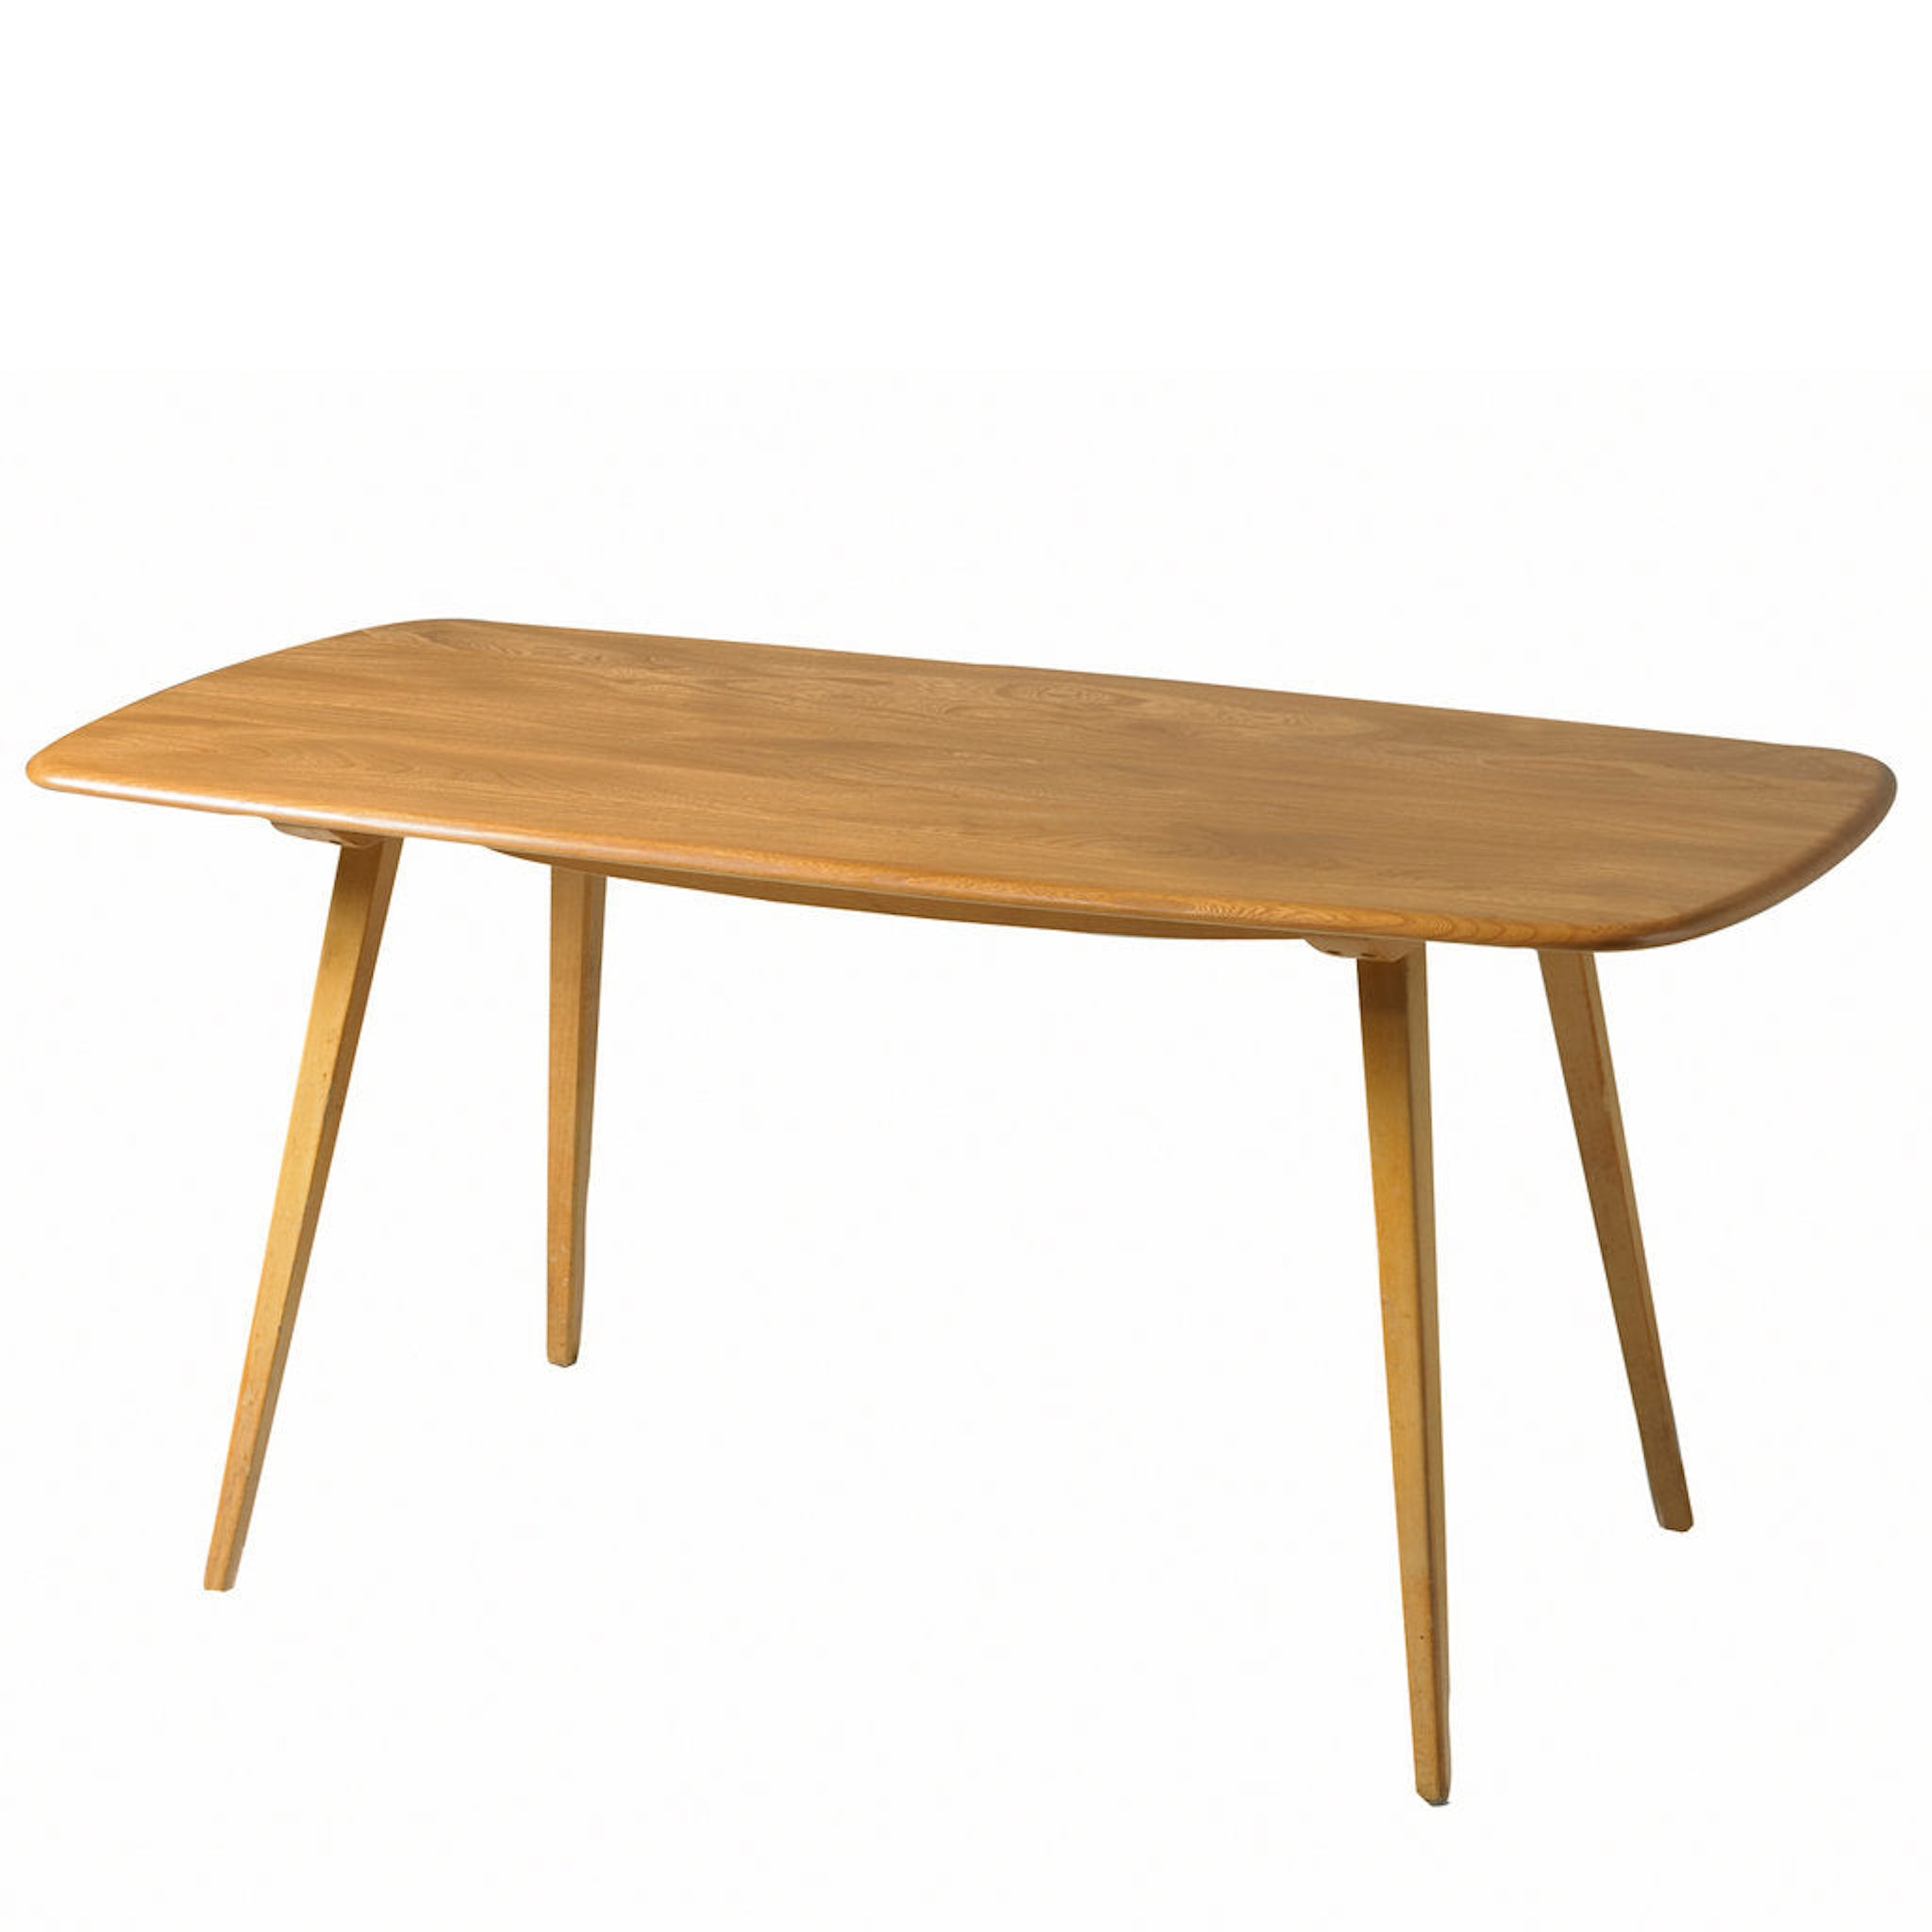 Plank Table by Ercol